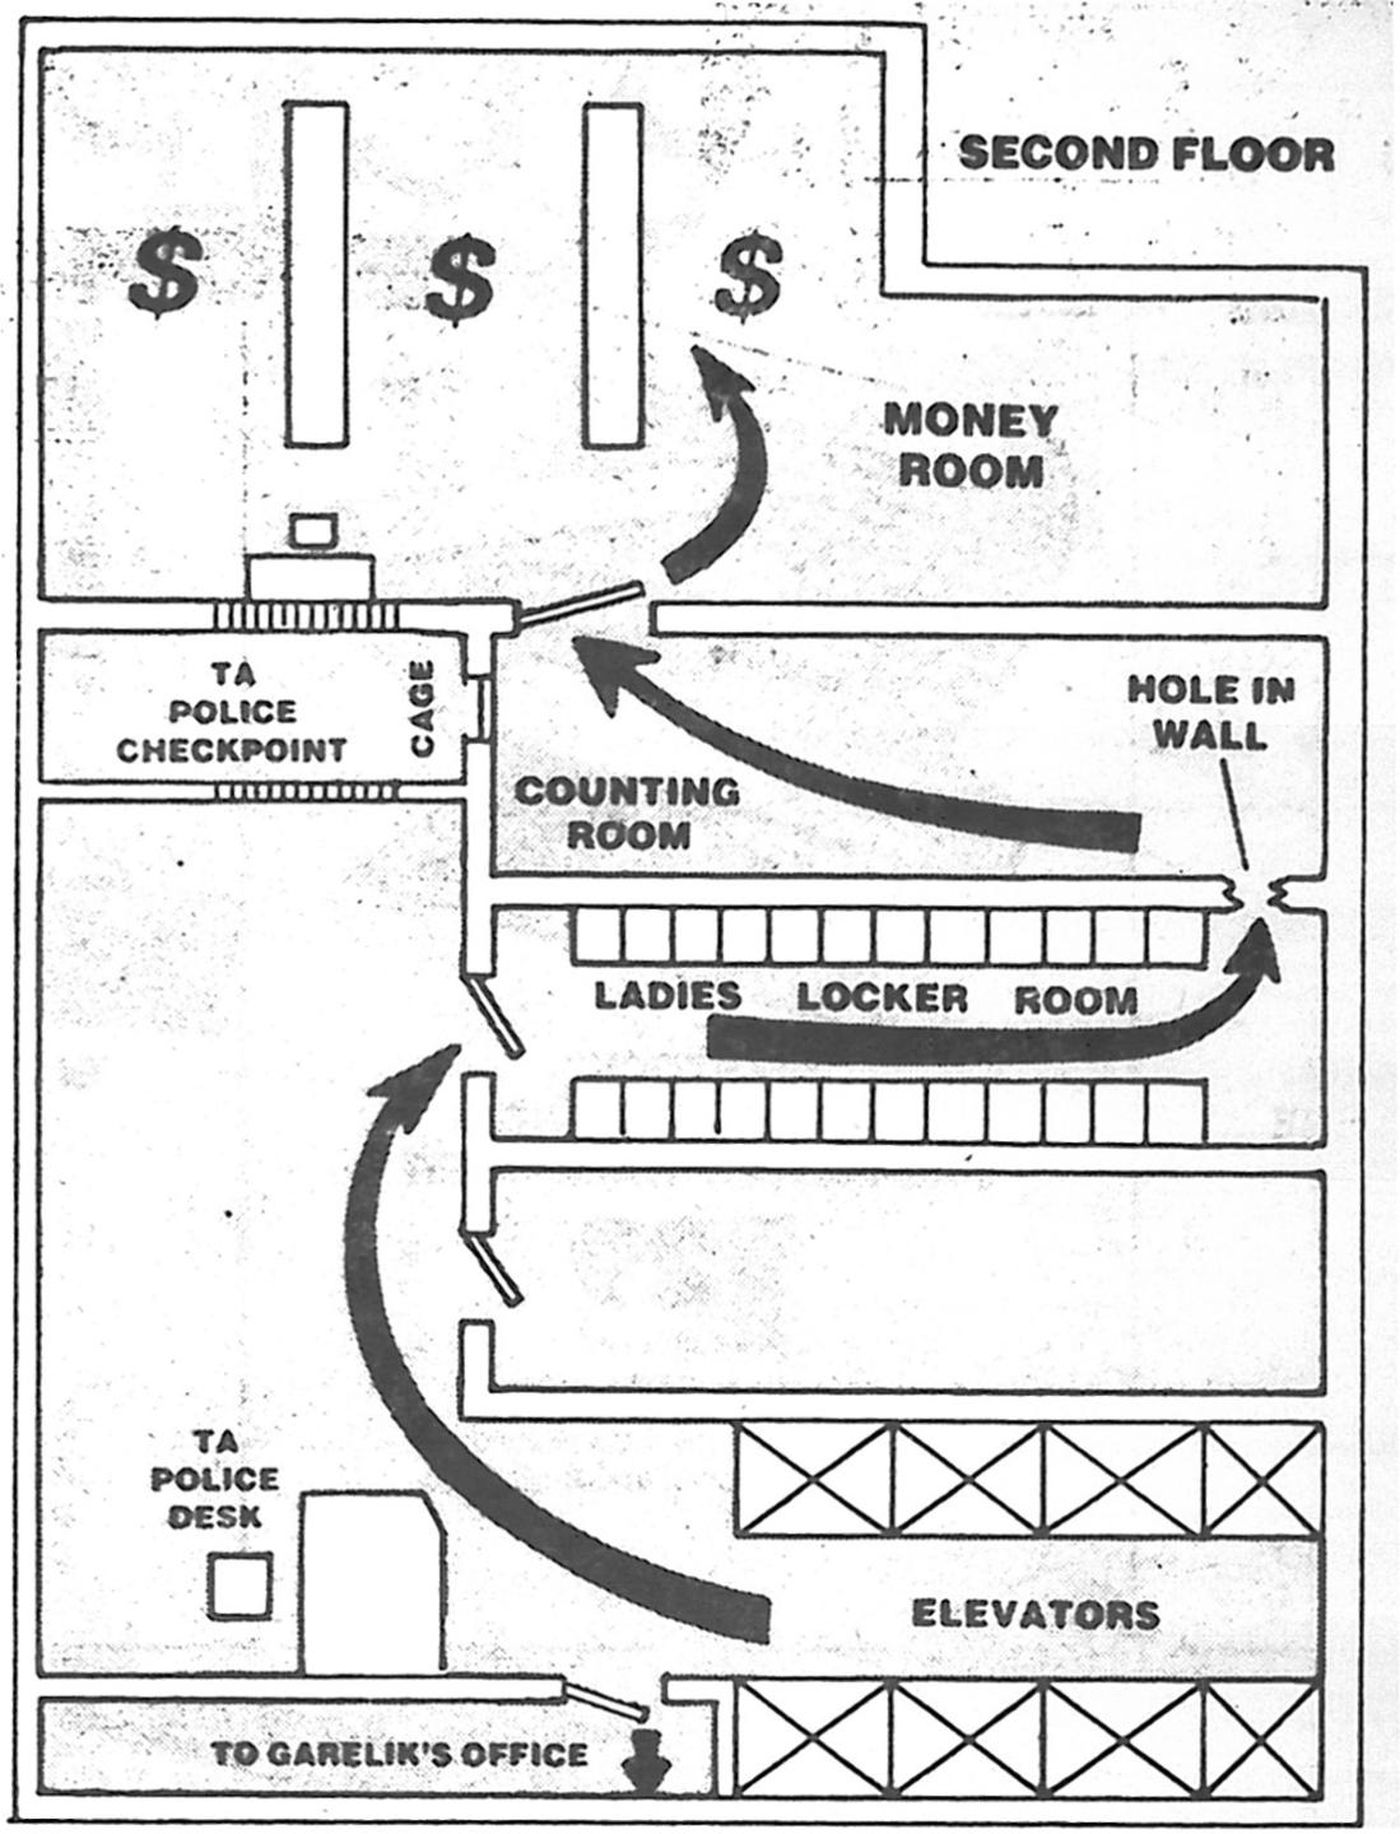 A Look Back At The Mta Heist